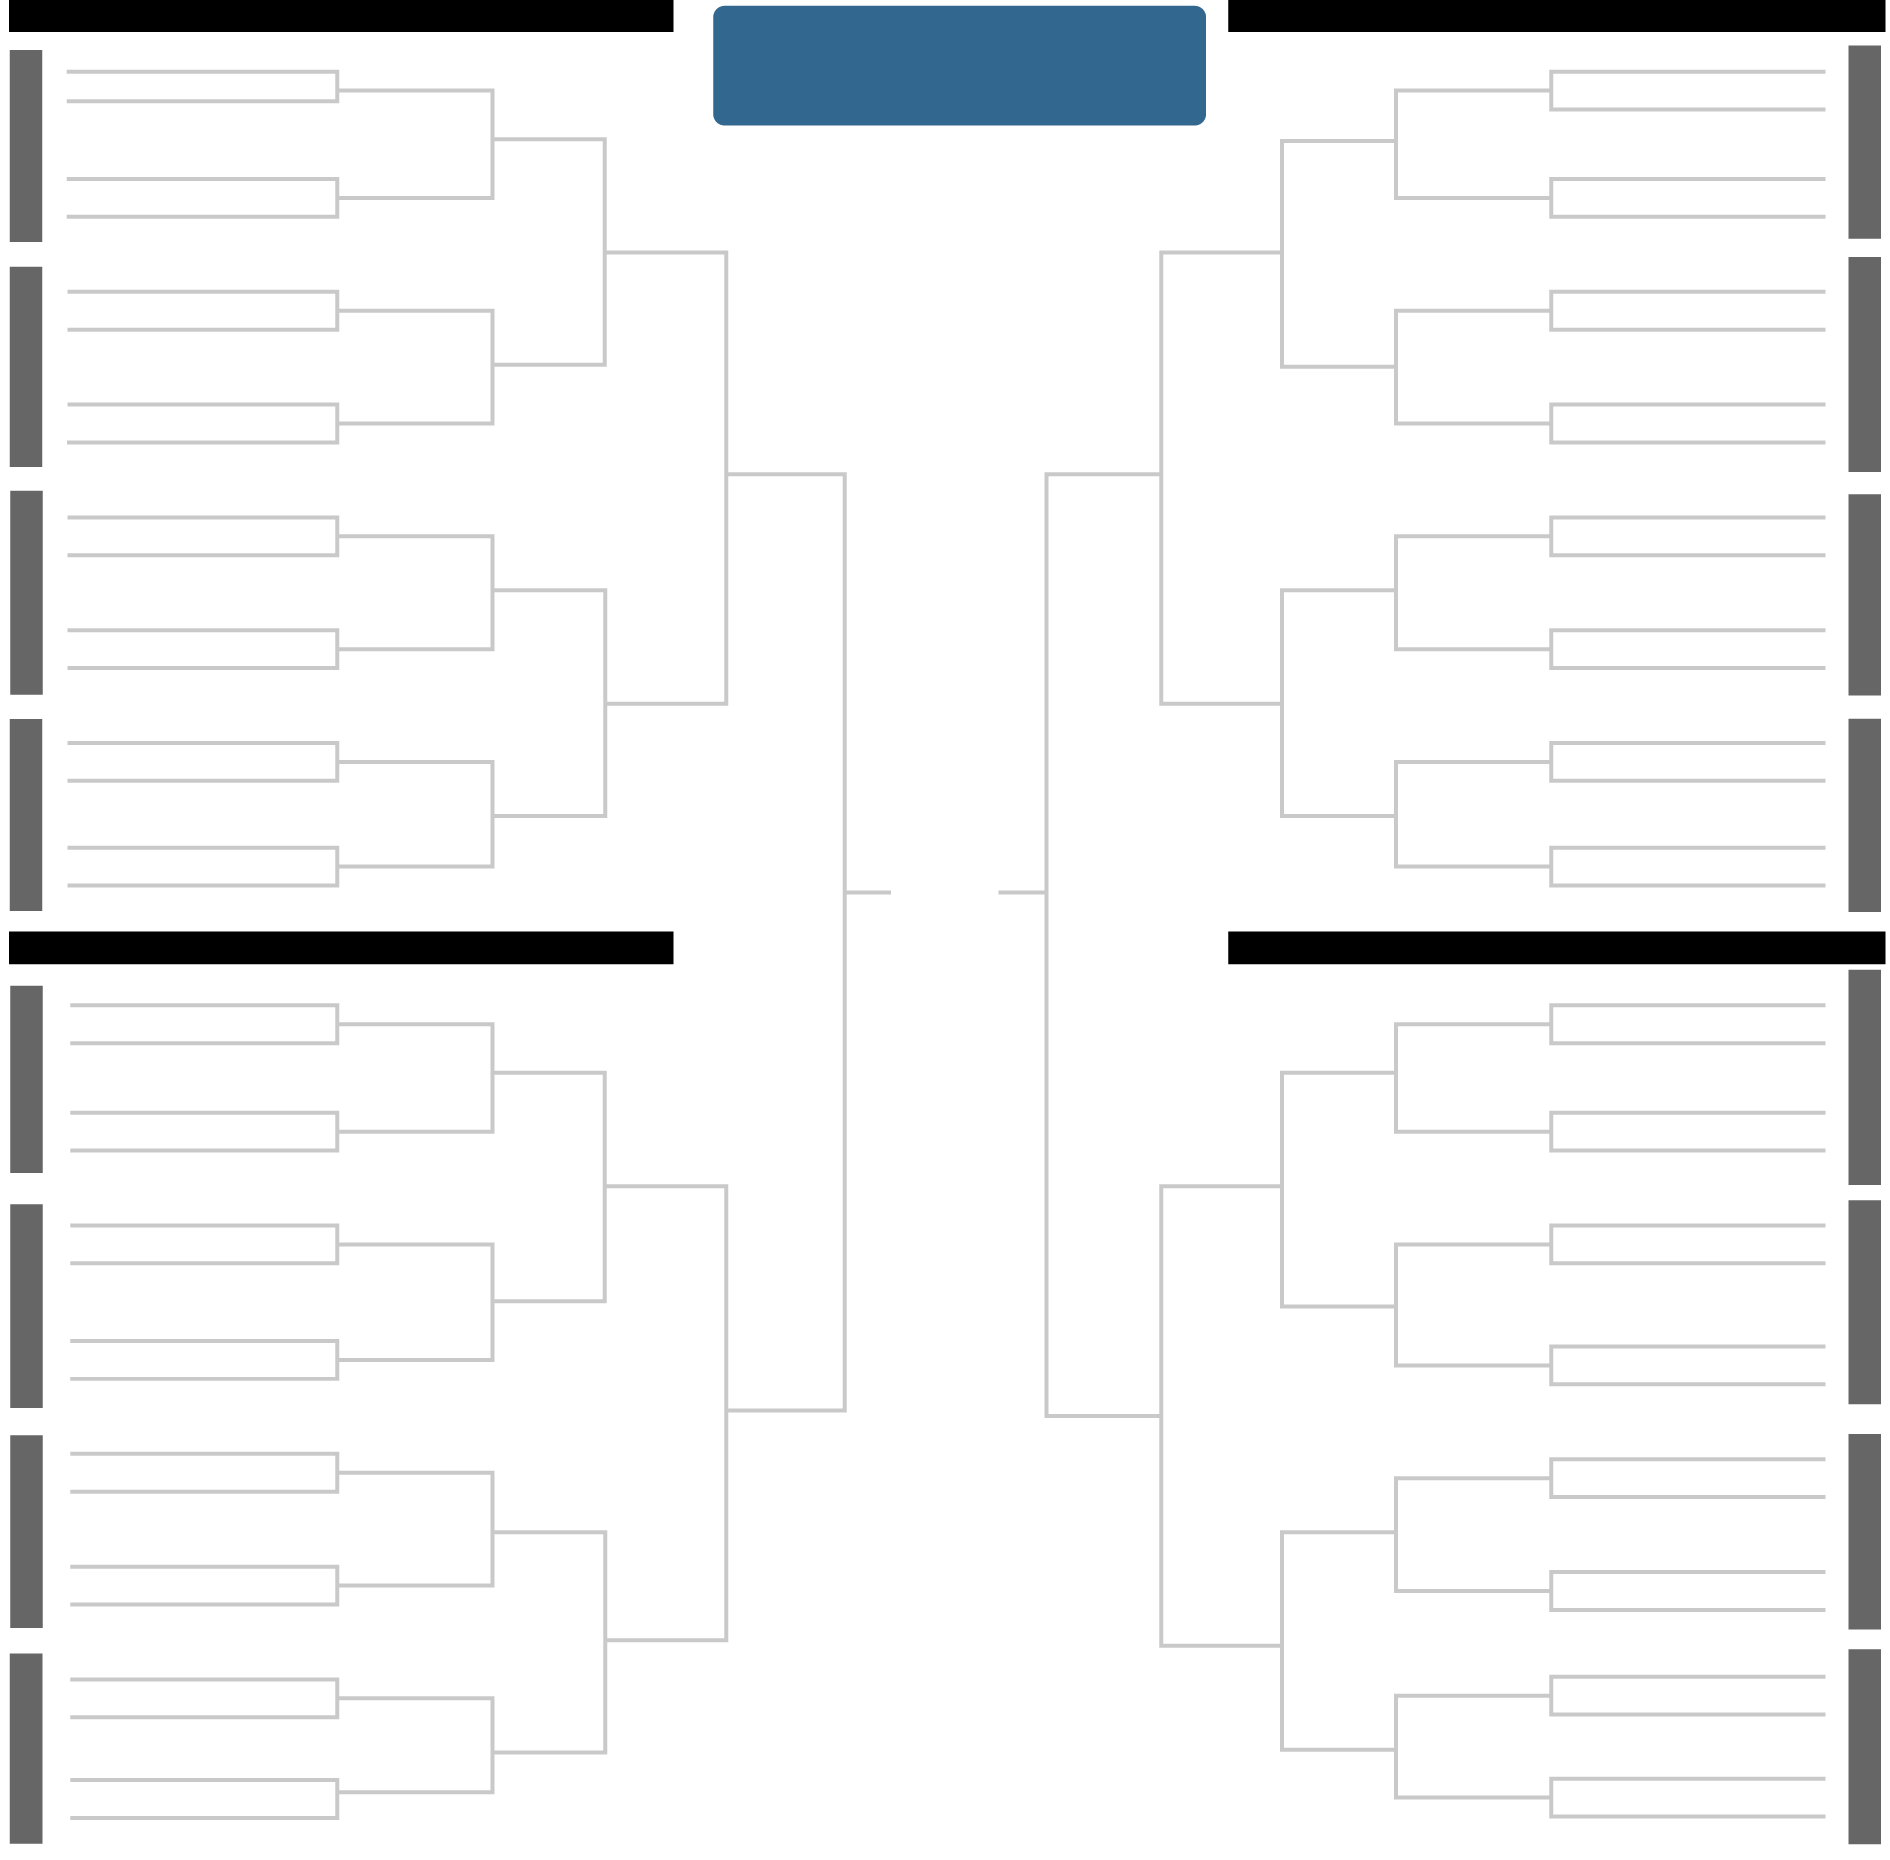 Printable 2018 N.C.A.A. Men's Tournament Bracket   The New York Times